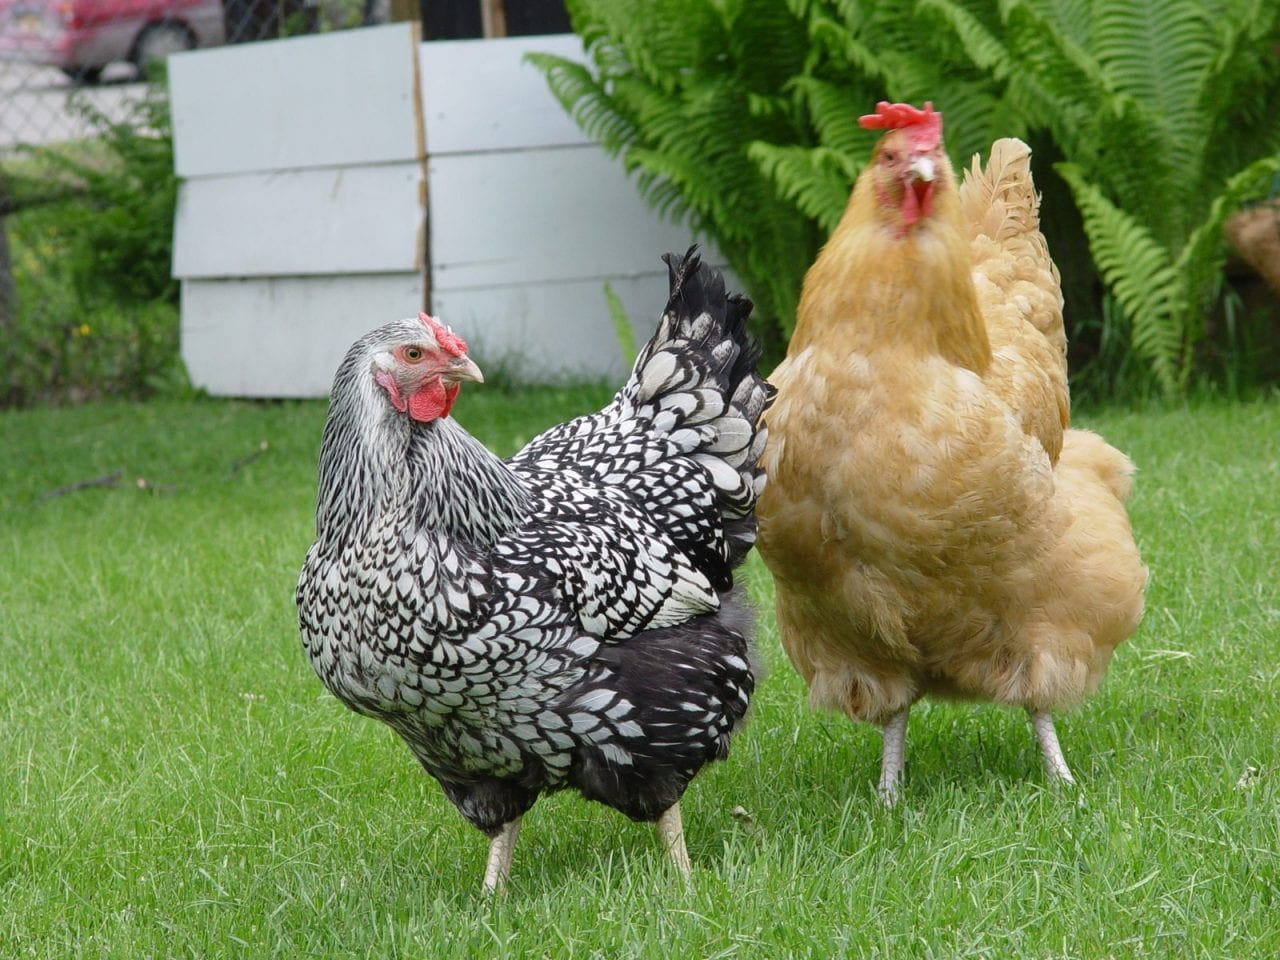 """Anchorage chickens"" by mazaletel - Flickr: the ladies. Licensed under CC BY 2.0 via Commons - https://commons.wikimedia.org/wiki/File:Anchorage_chickens.jpg#/media/File:Anchorage_chickens.jpg"